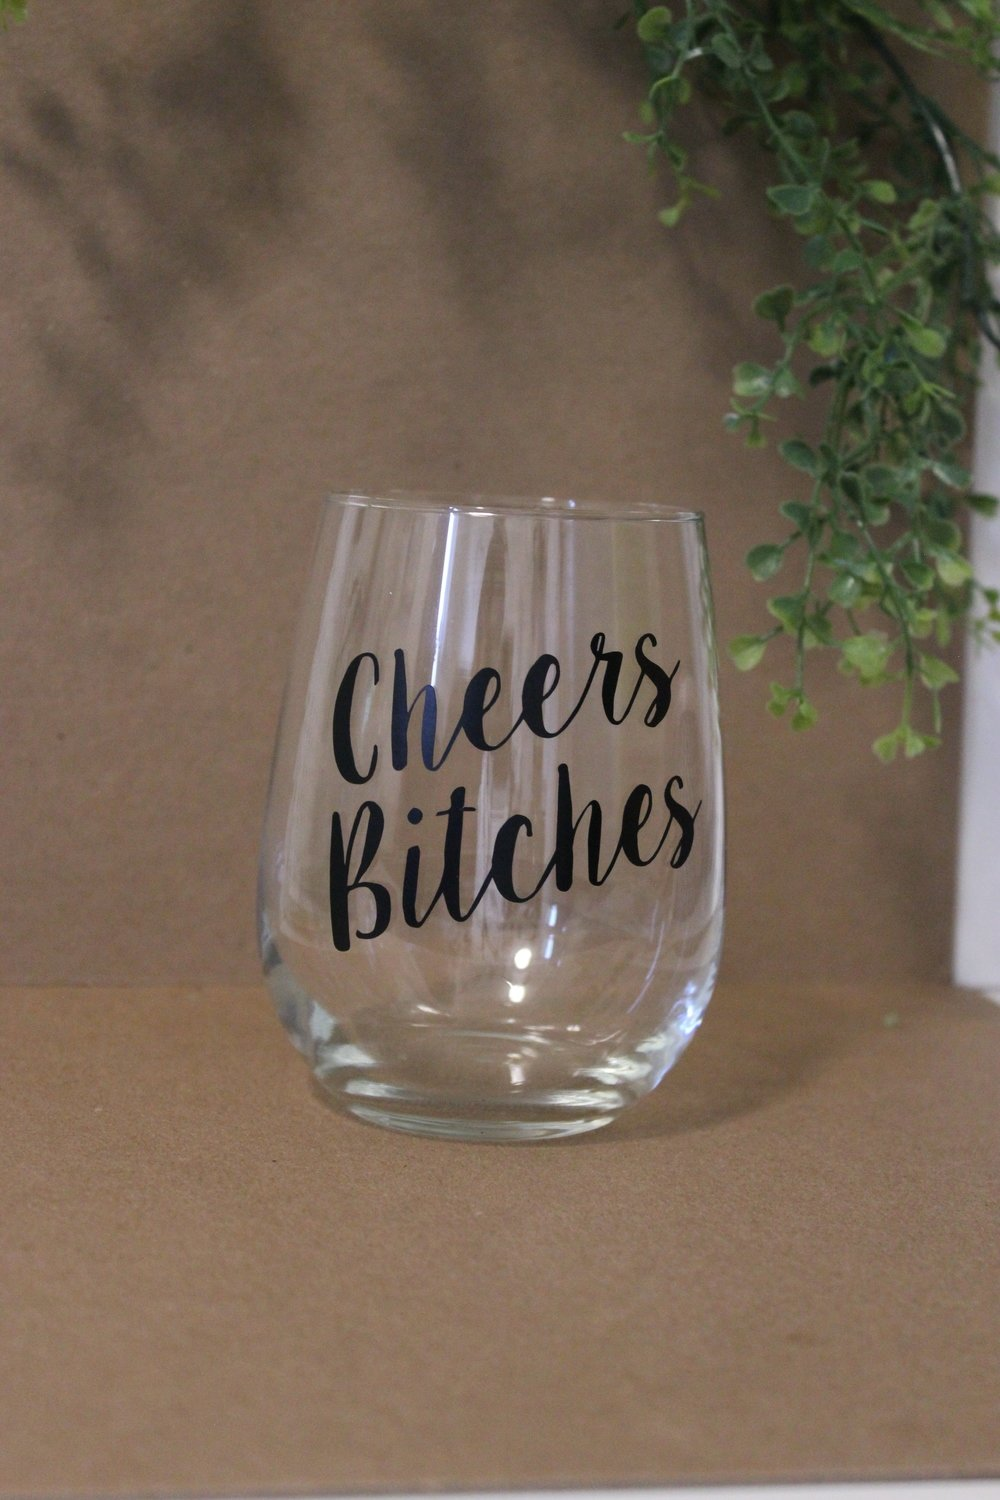 Wine Glasses - Cheers B*tches